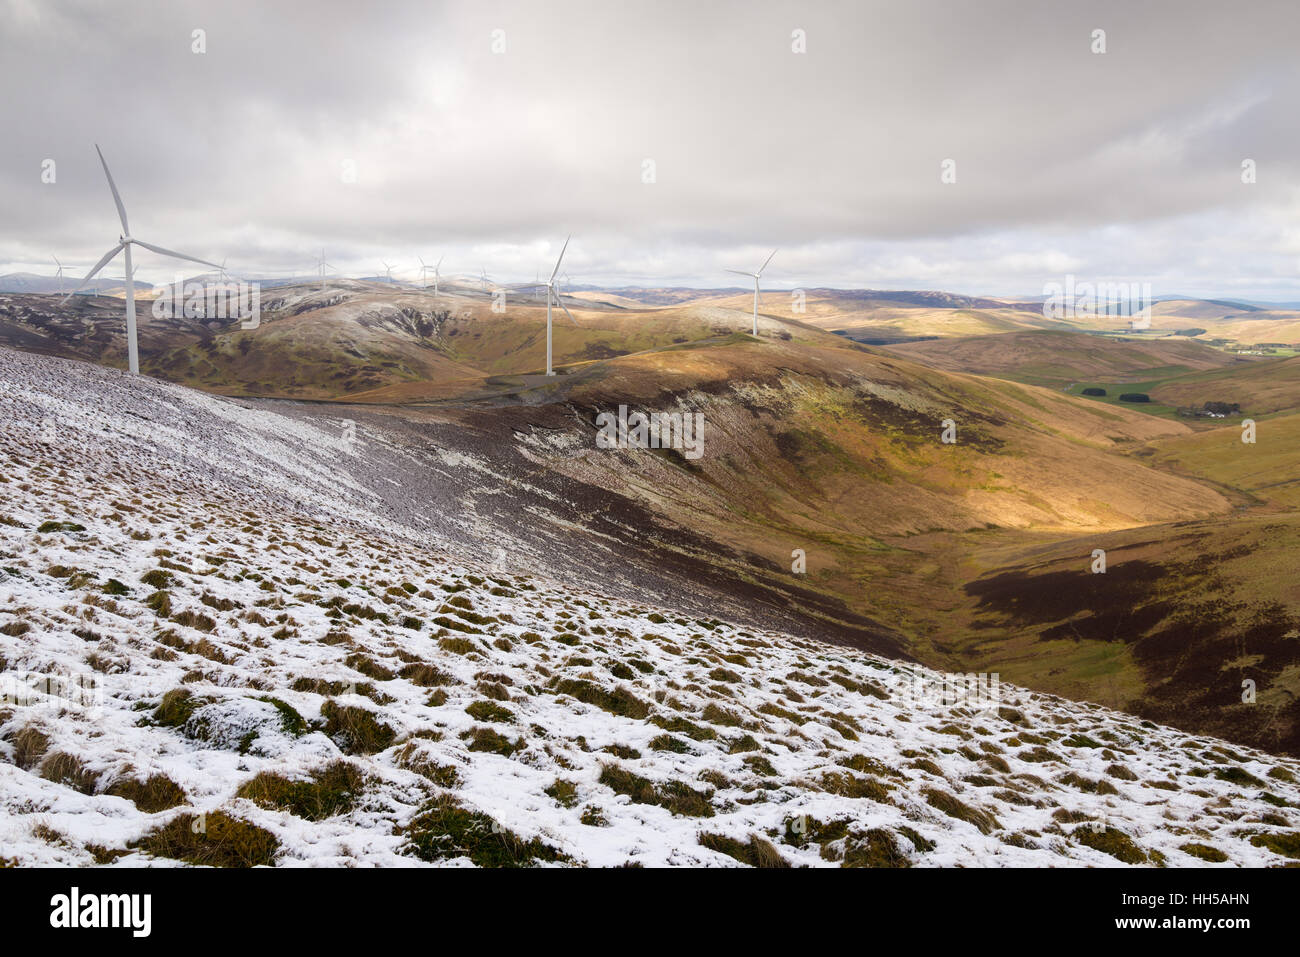 SSE Clyde windfarm in winter from mid hill, crawford, south lanarkshire, scotland - Stock Image